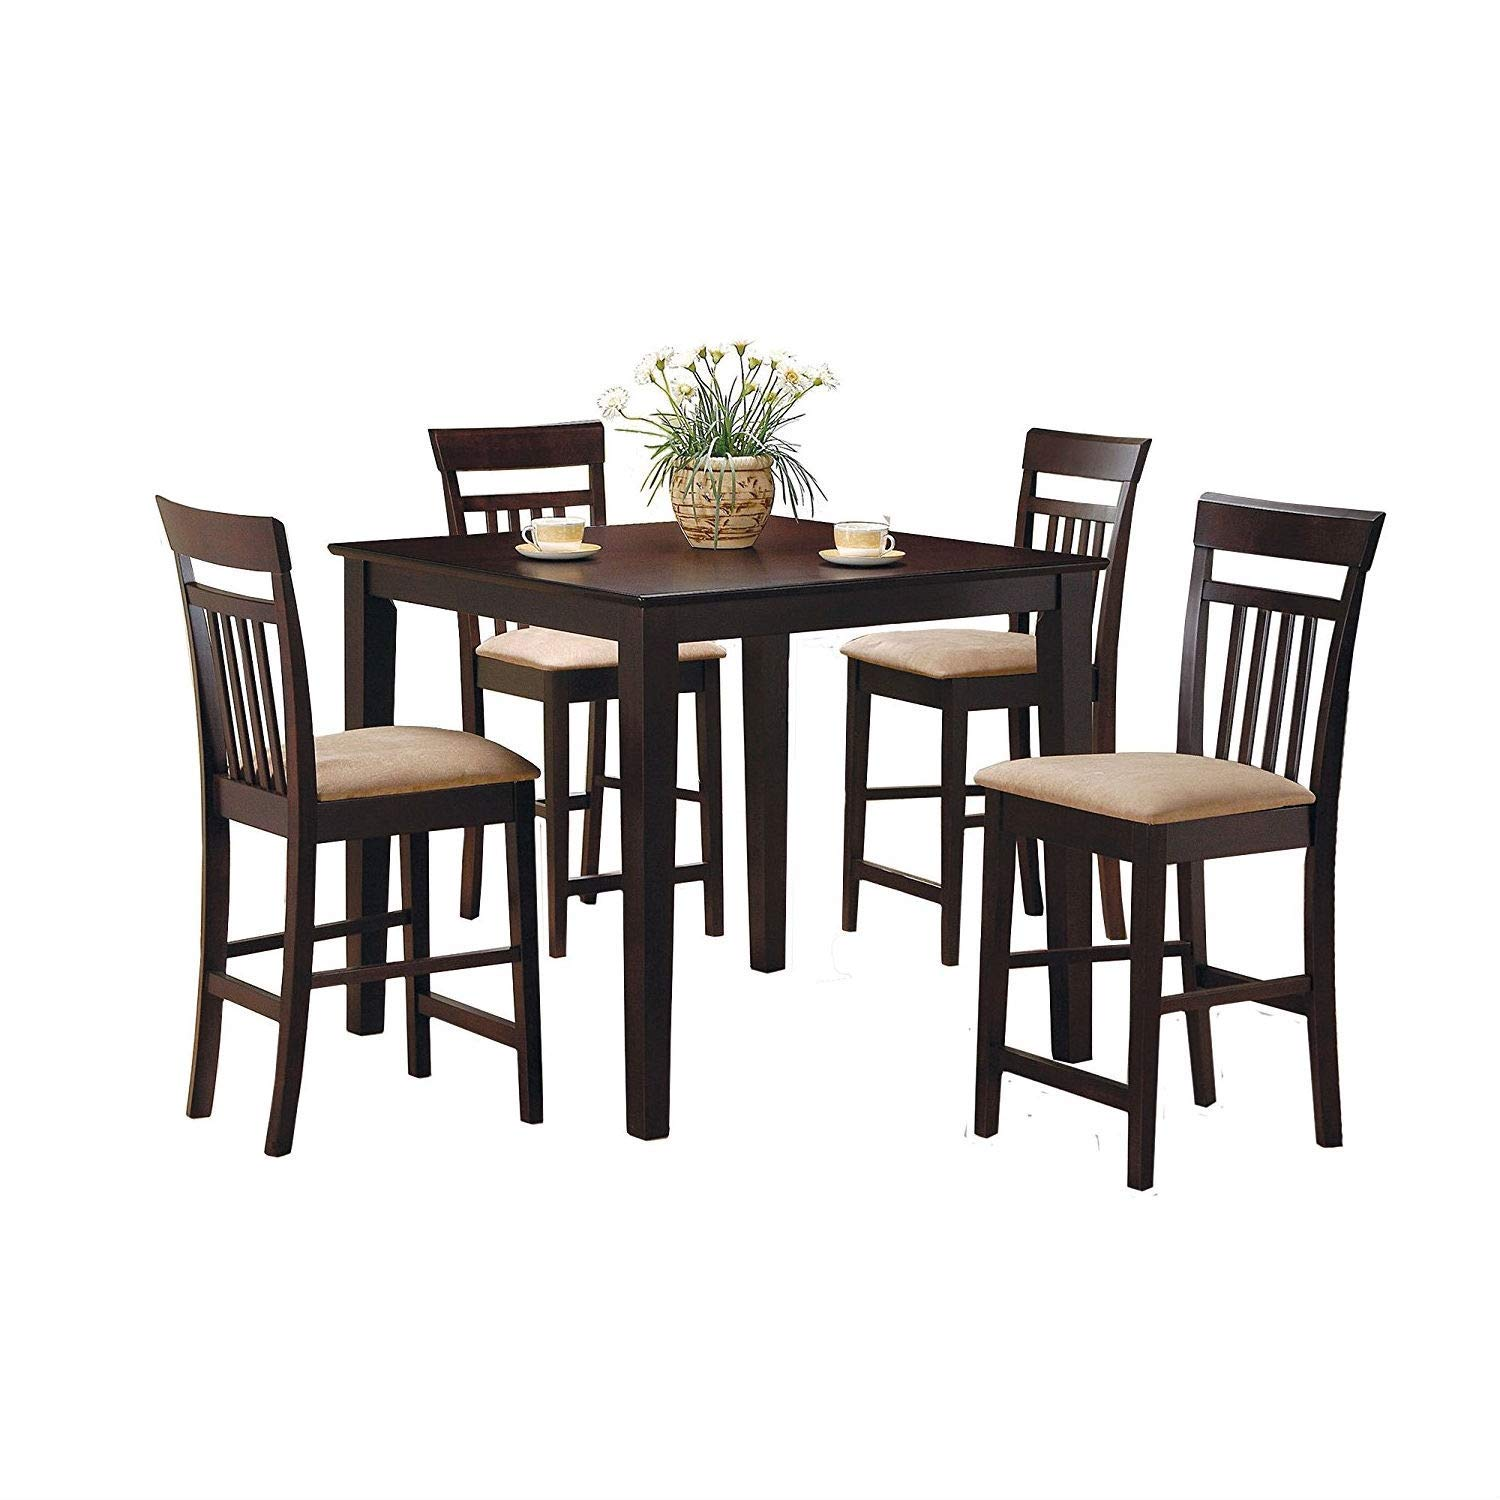 BeUniqueToday Dark Brown 5-Piece Dining Room Set with 4 Counter Height Barstools, A Great Welcome Addition to Your Casual Contemporary Home, Sleek Square Table has Smooth Edges and Tapered Square Legs